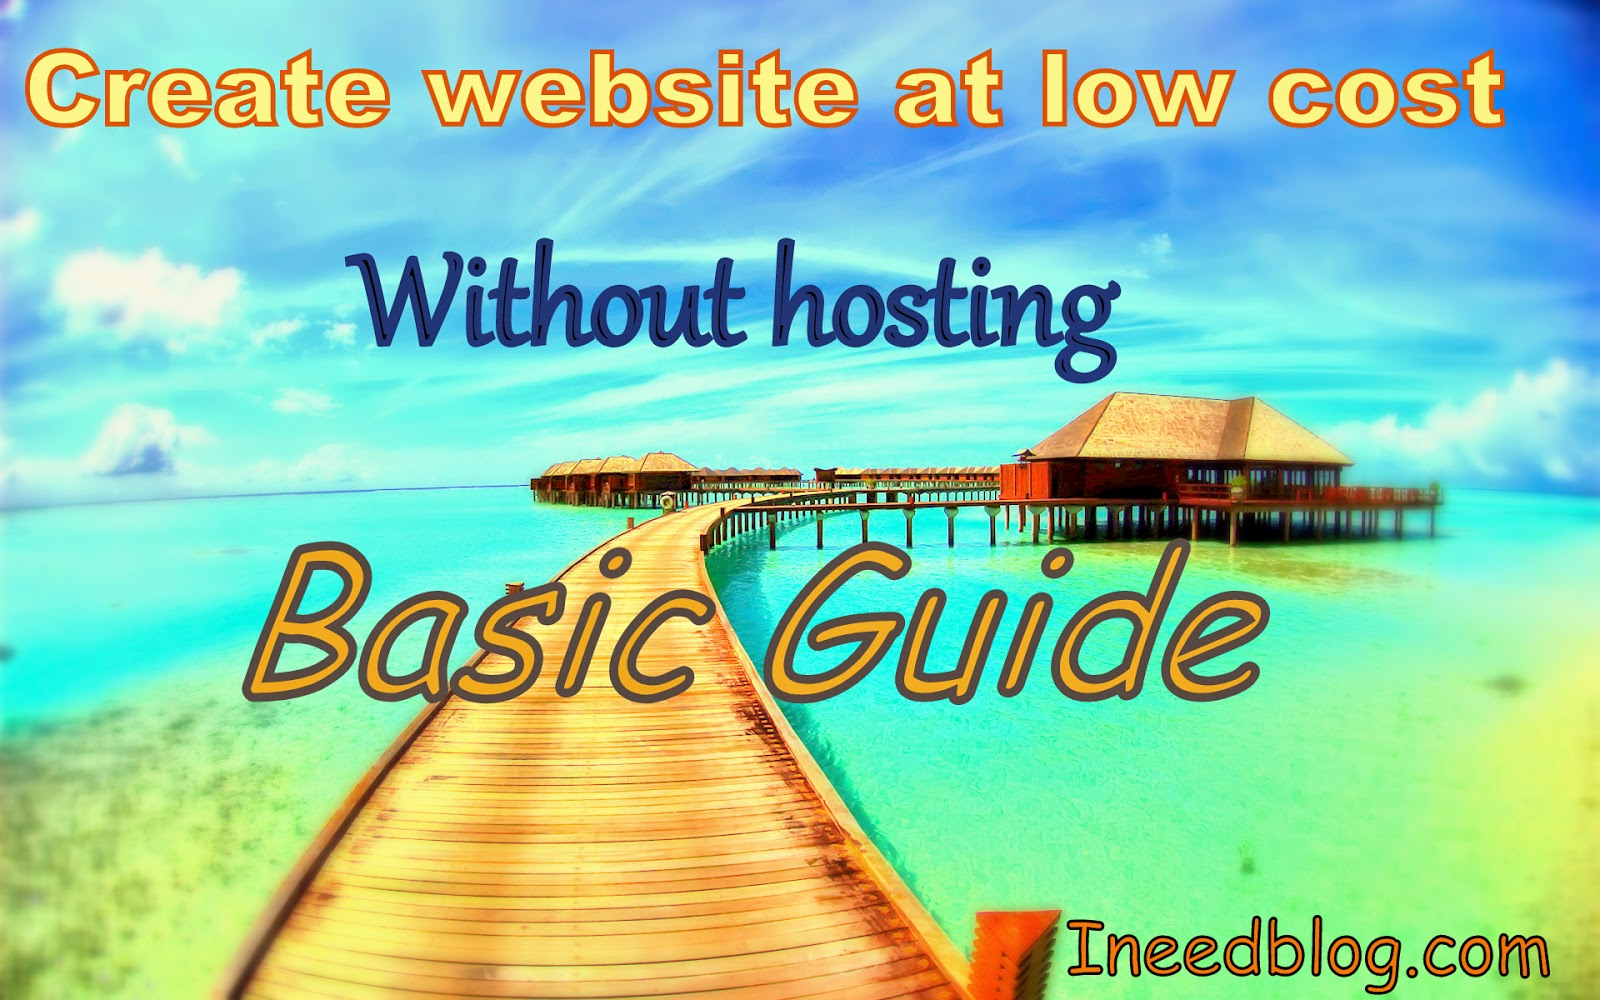 Create website at low cost without hosting.